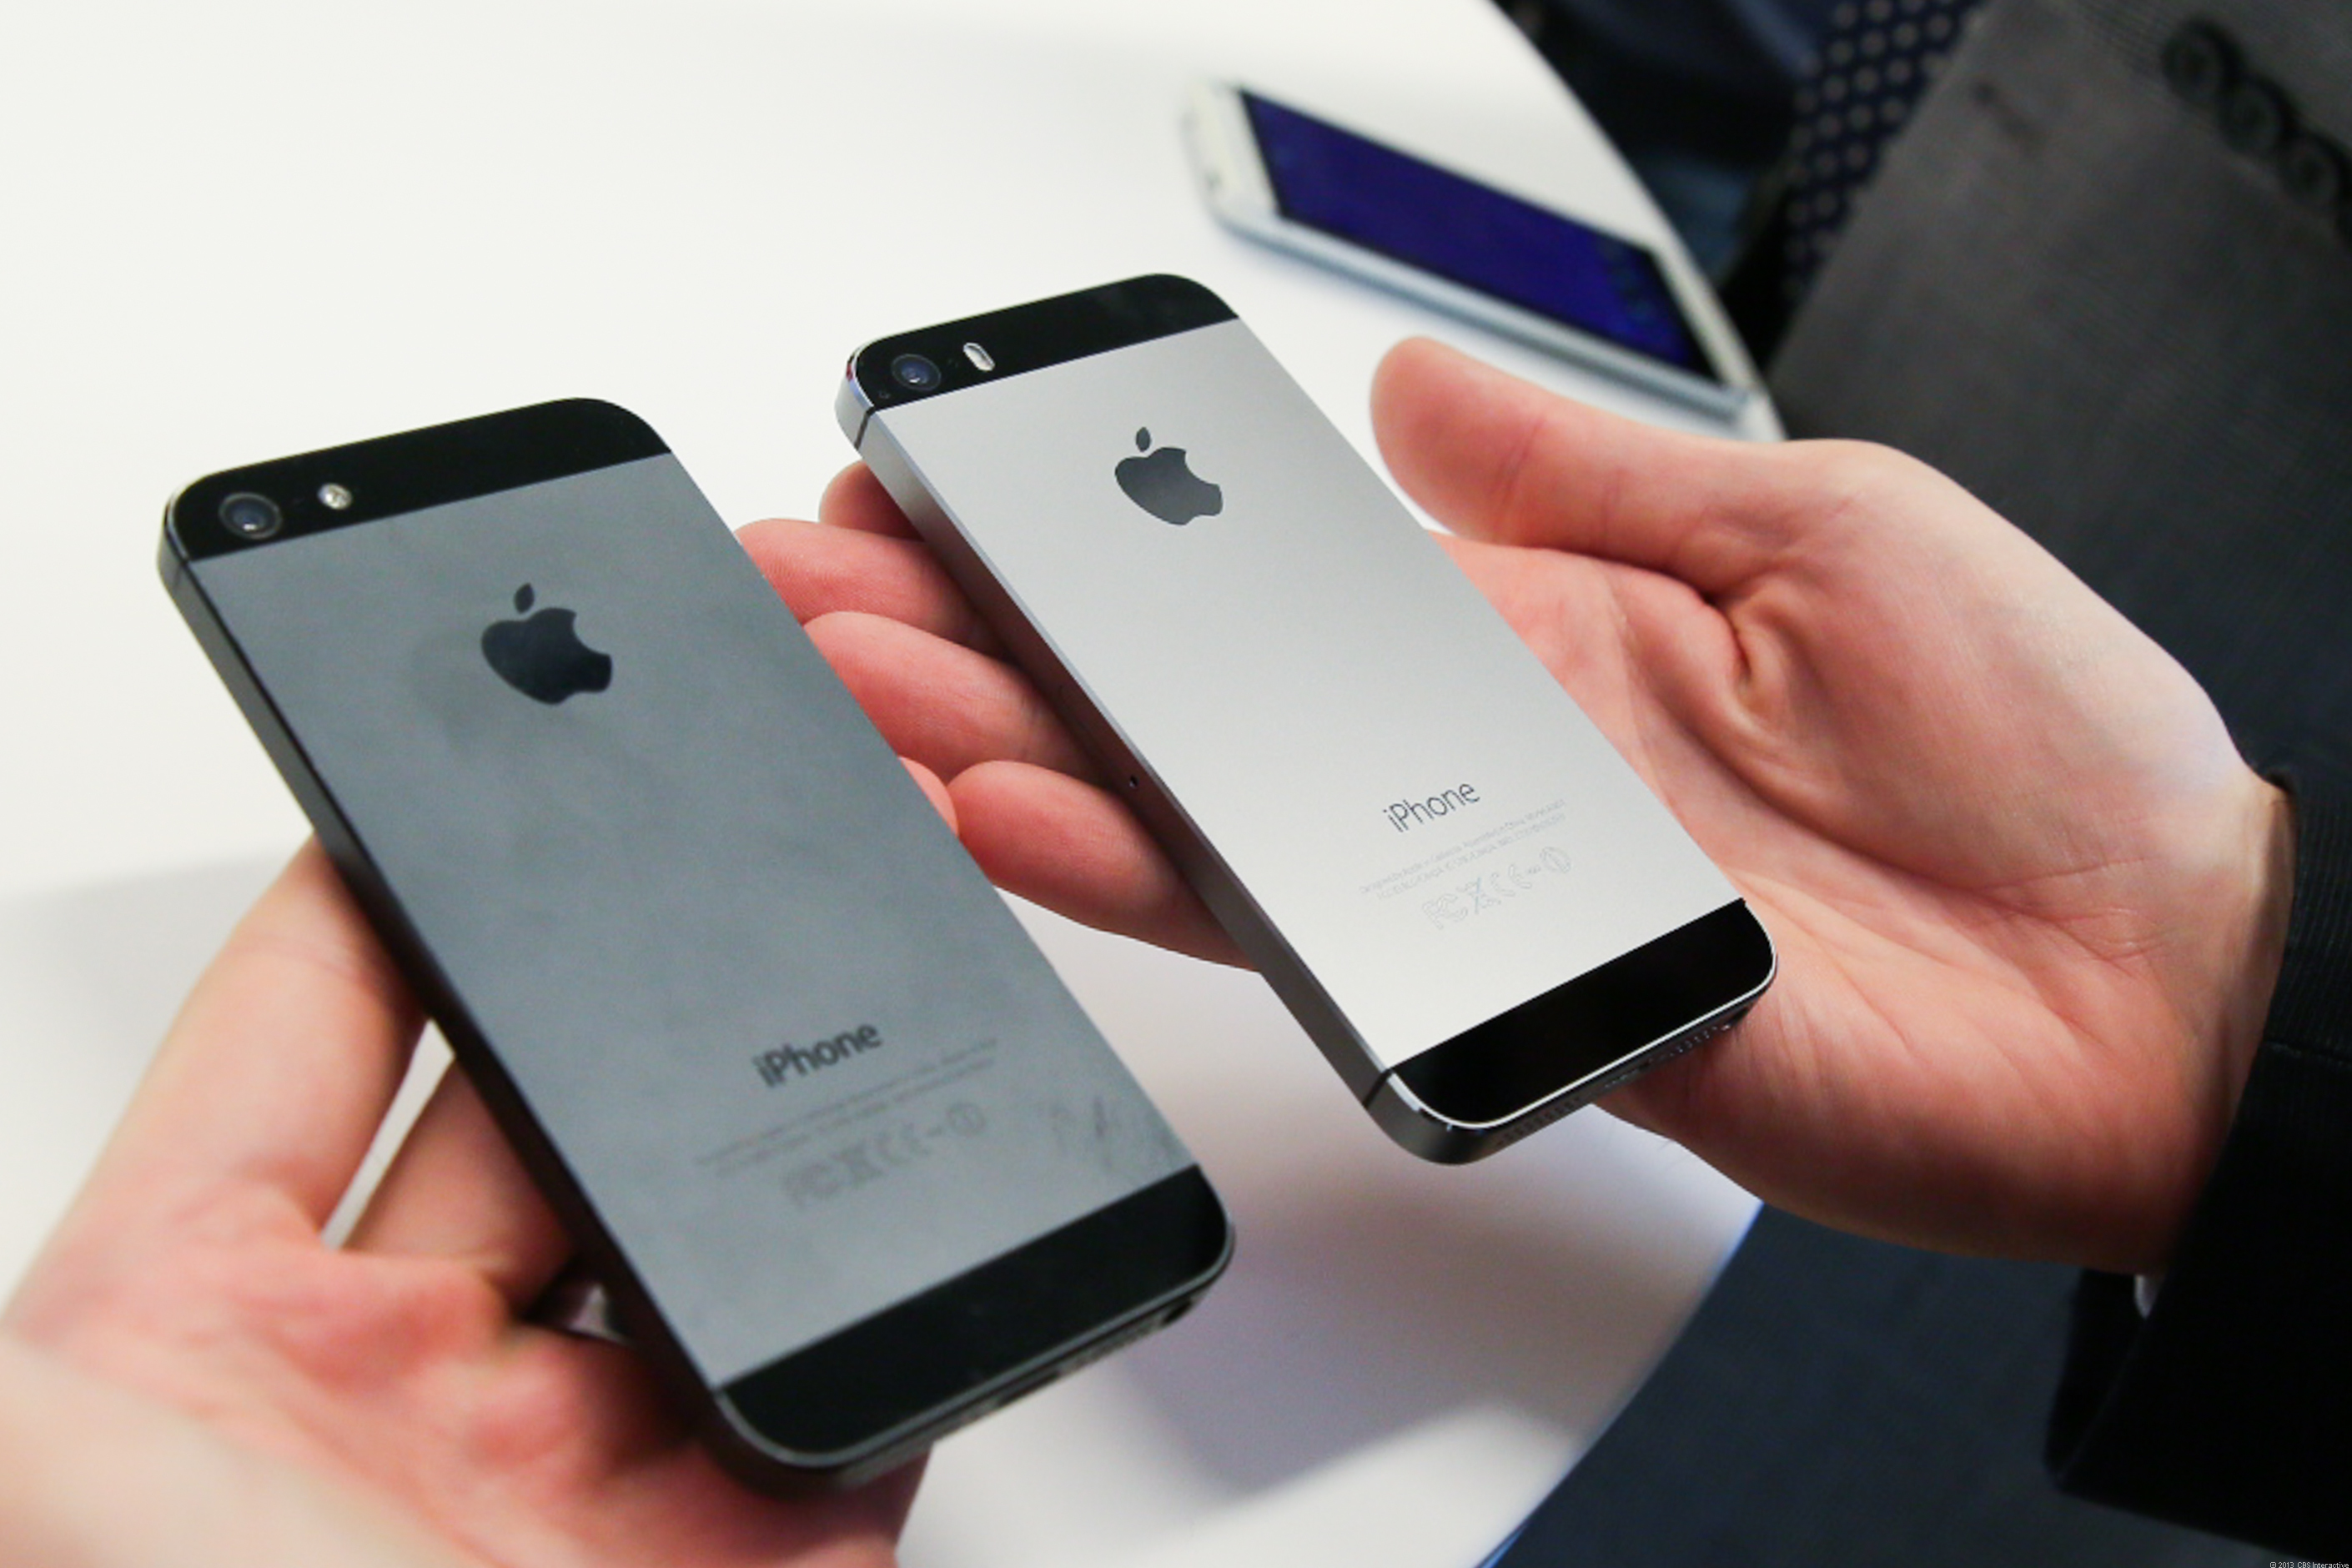 The iPhone 5, left, and 5S in space gray.